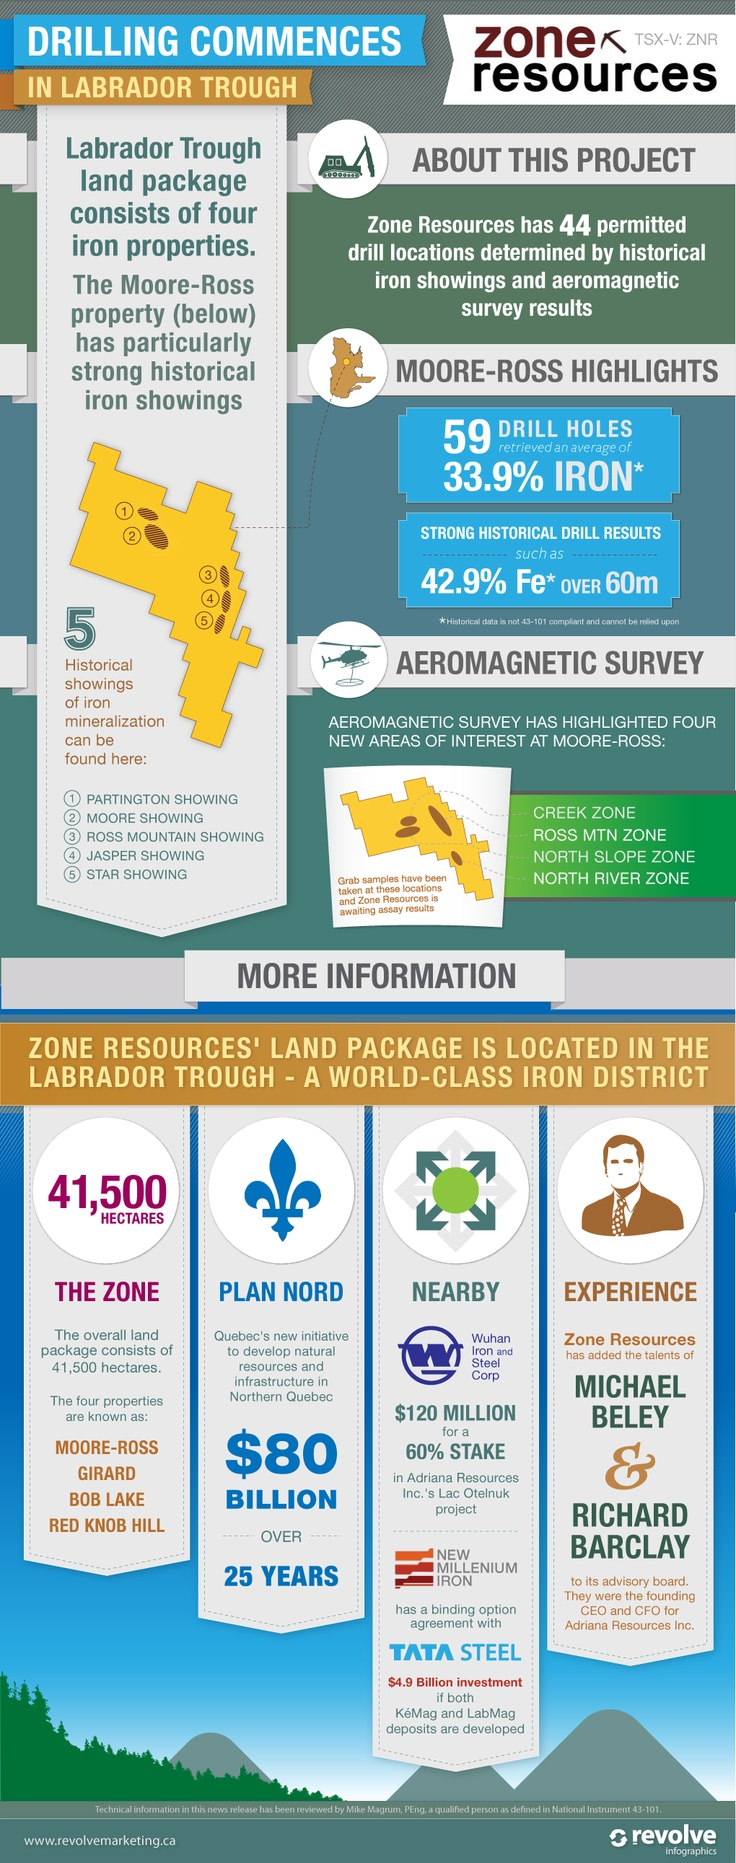 Zone Resources Inc. Commences Drilling in Labrador Trough, Northern Quebec